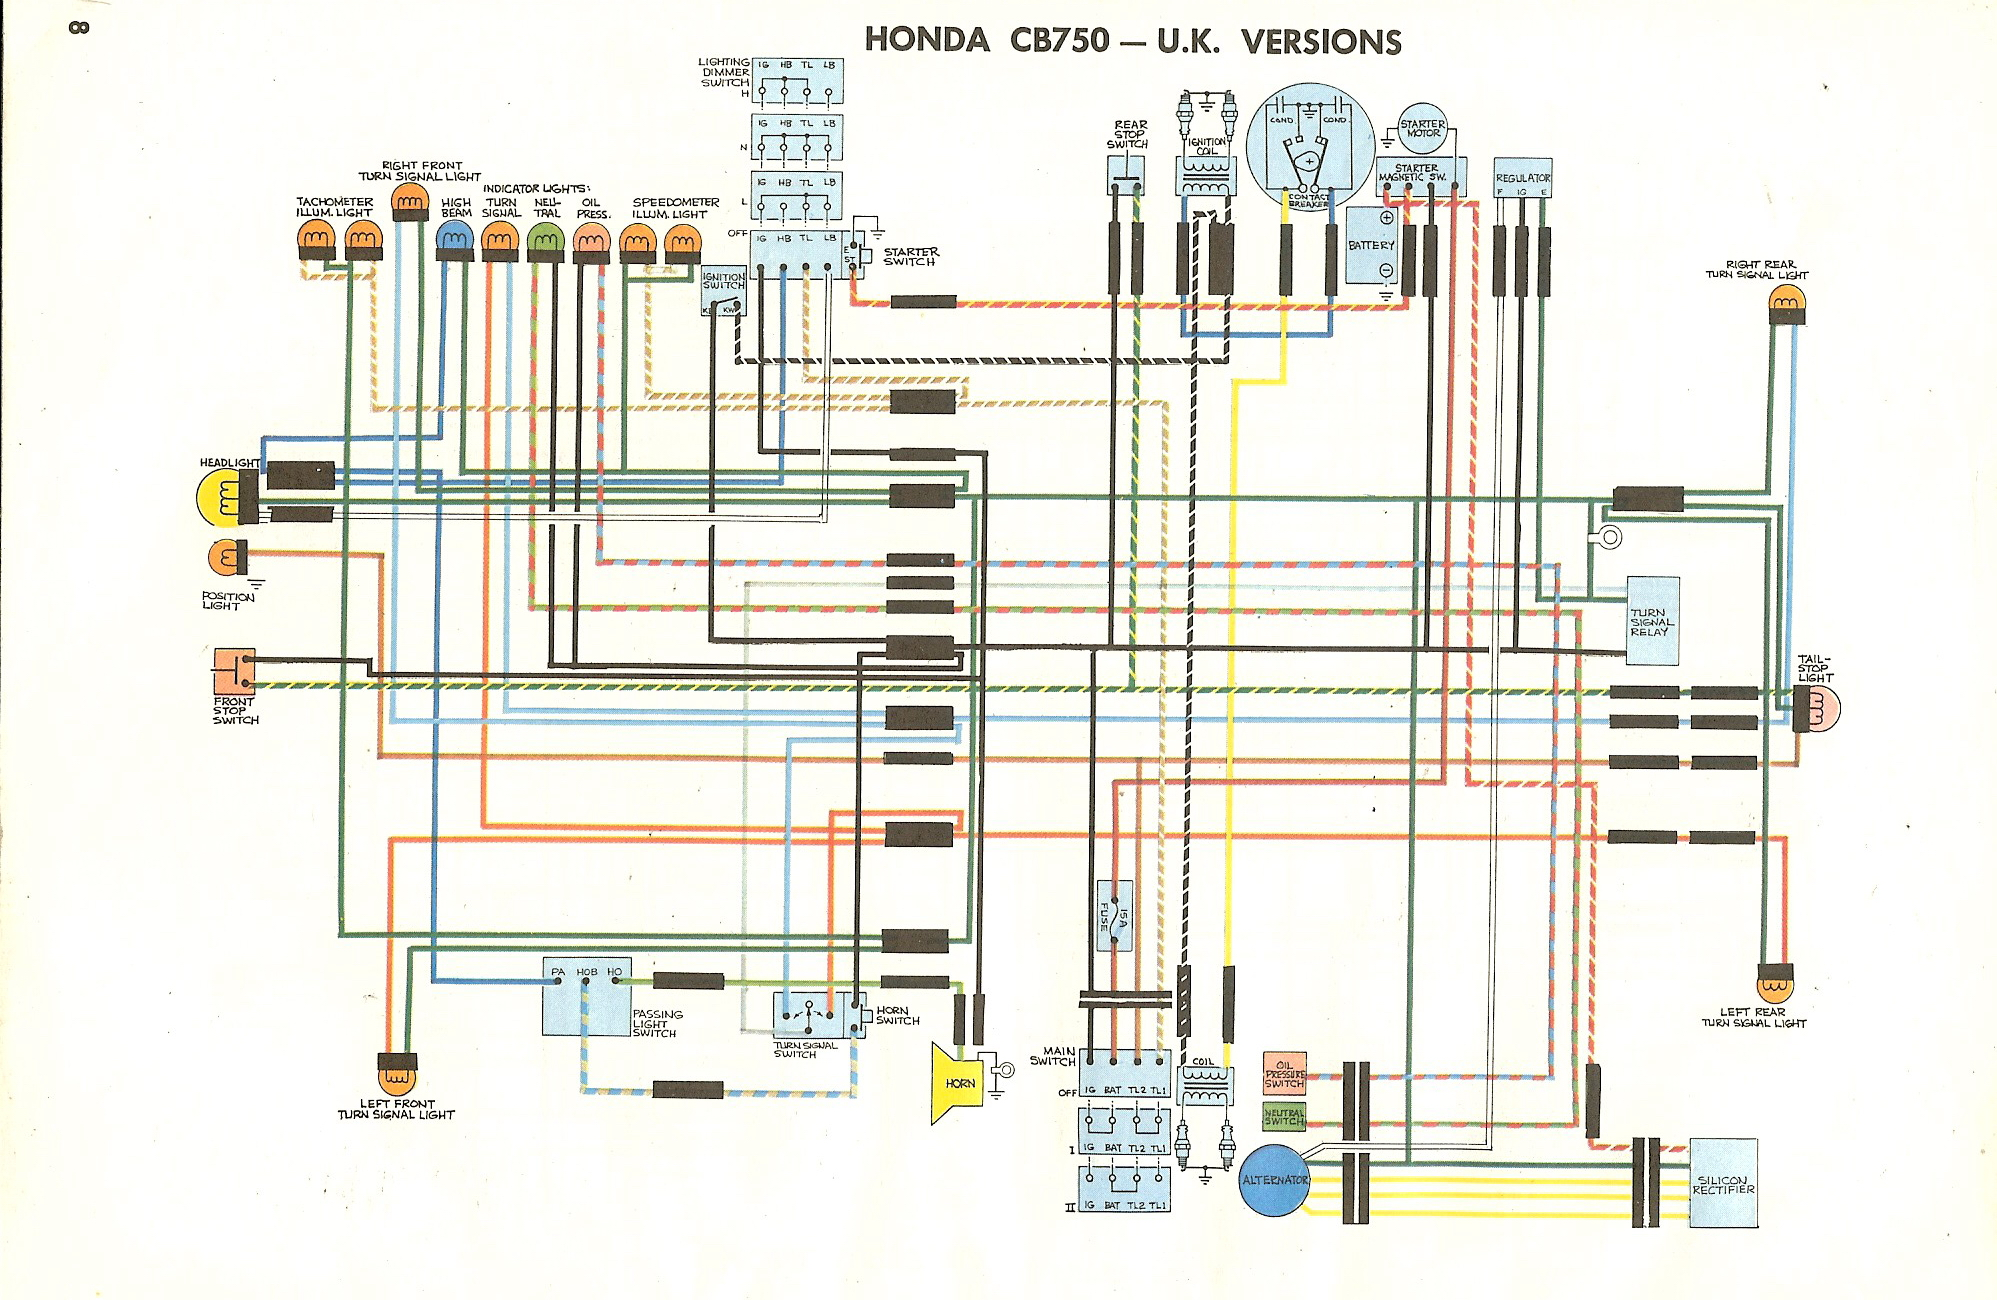 cb750k cb750 simplified wiring diagram Cb750 Wiring Diagram #10